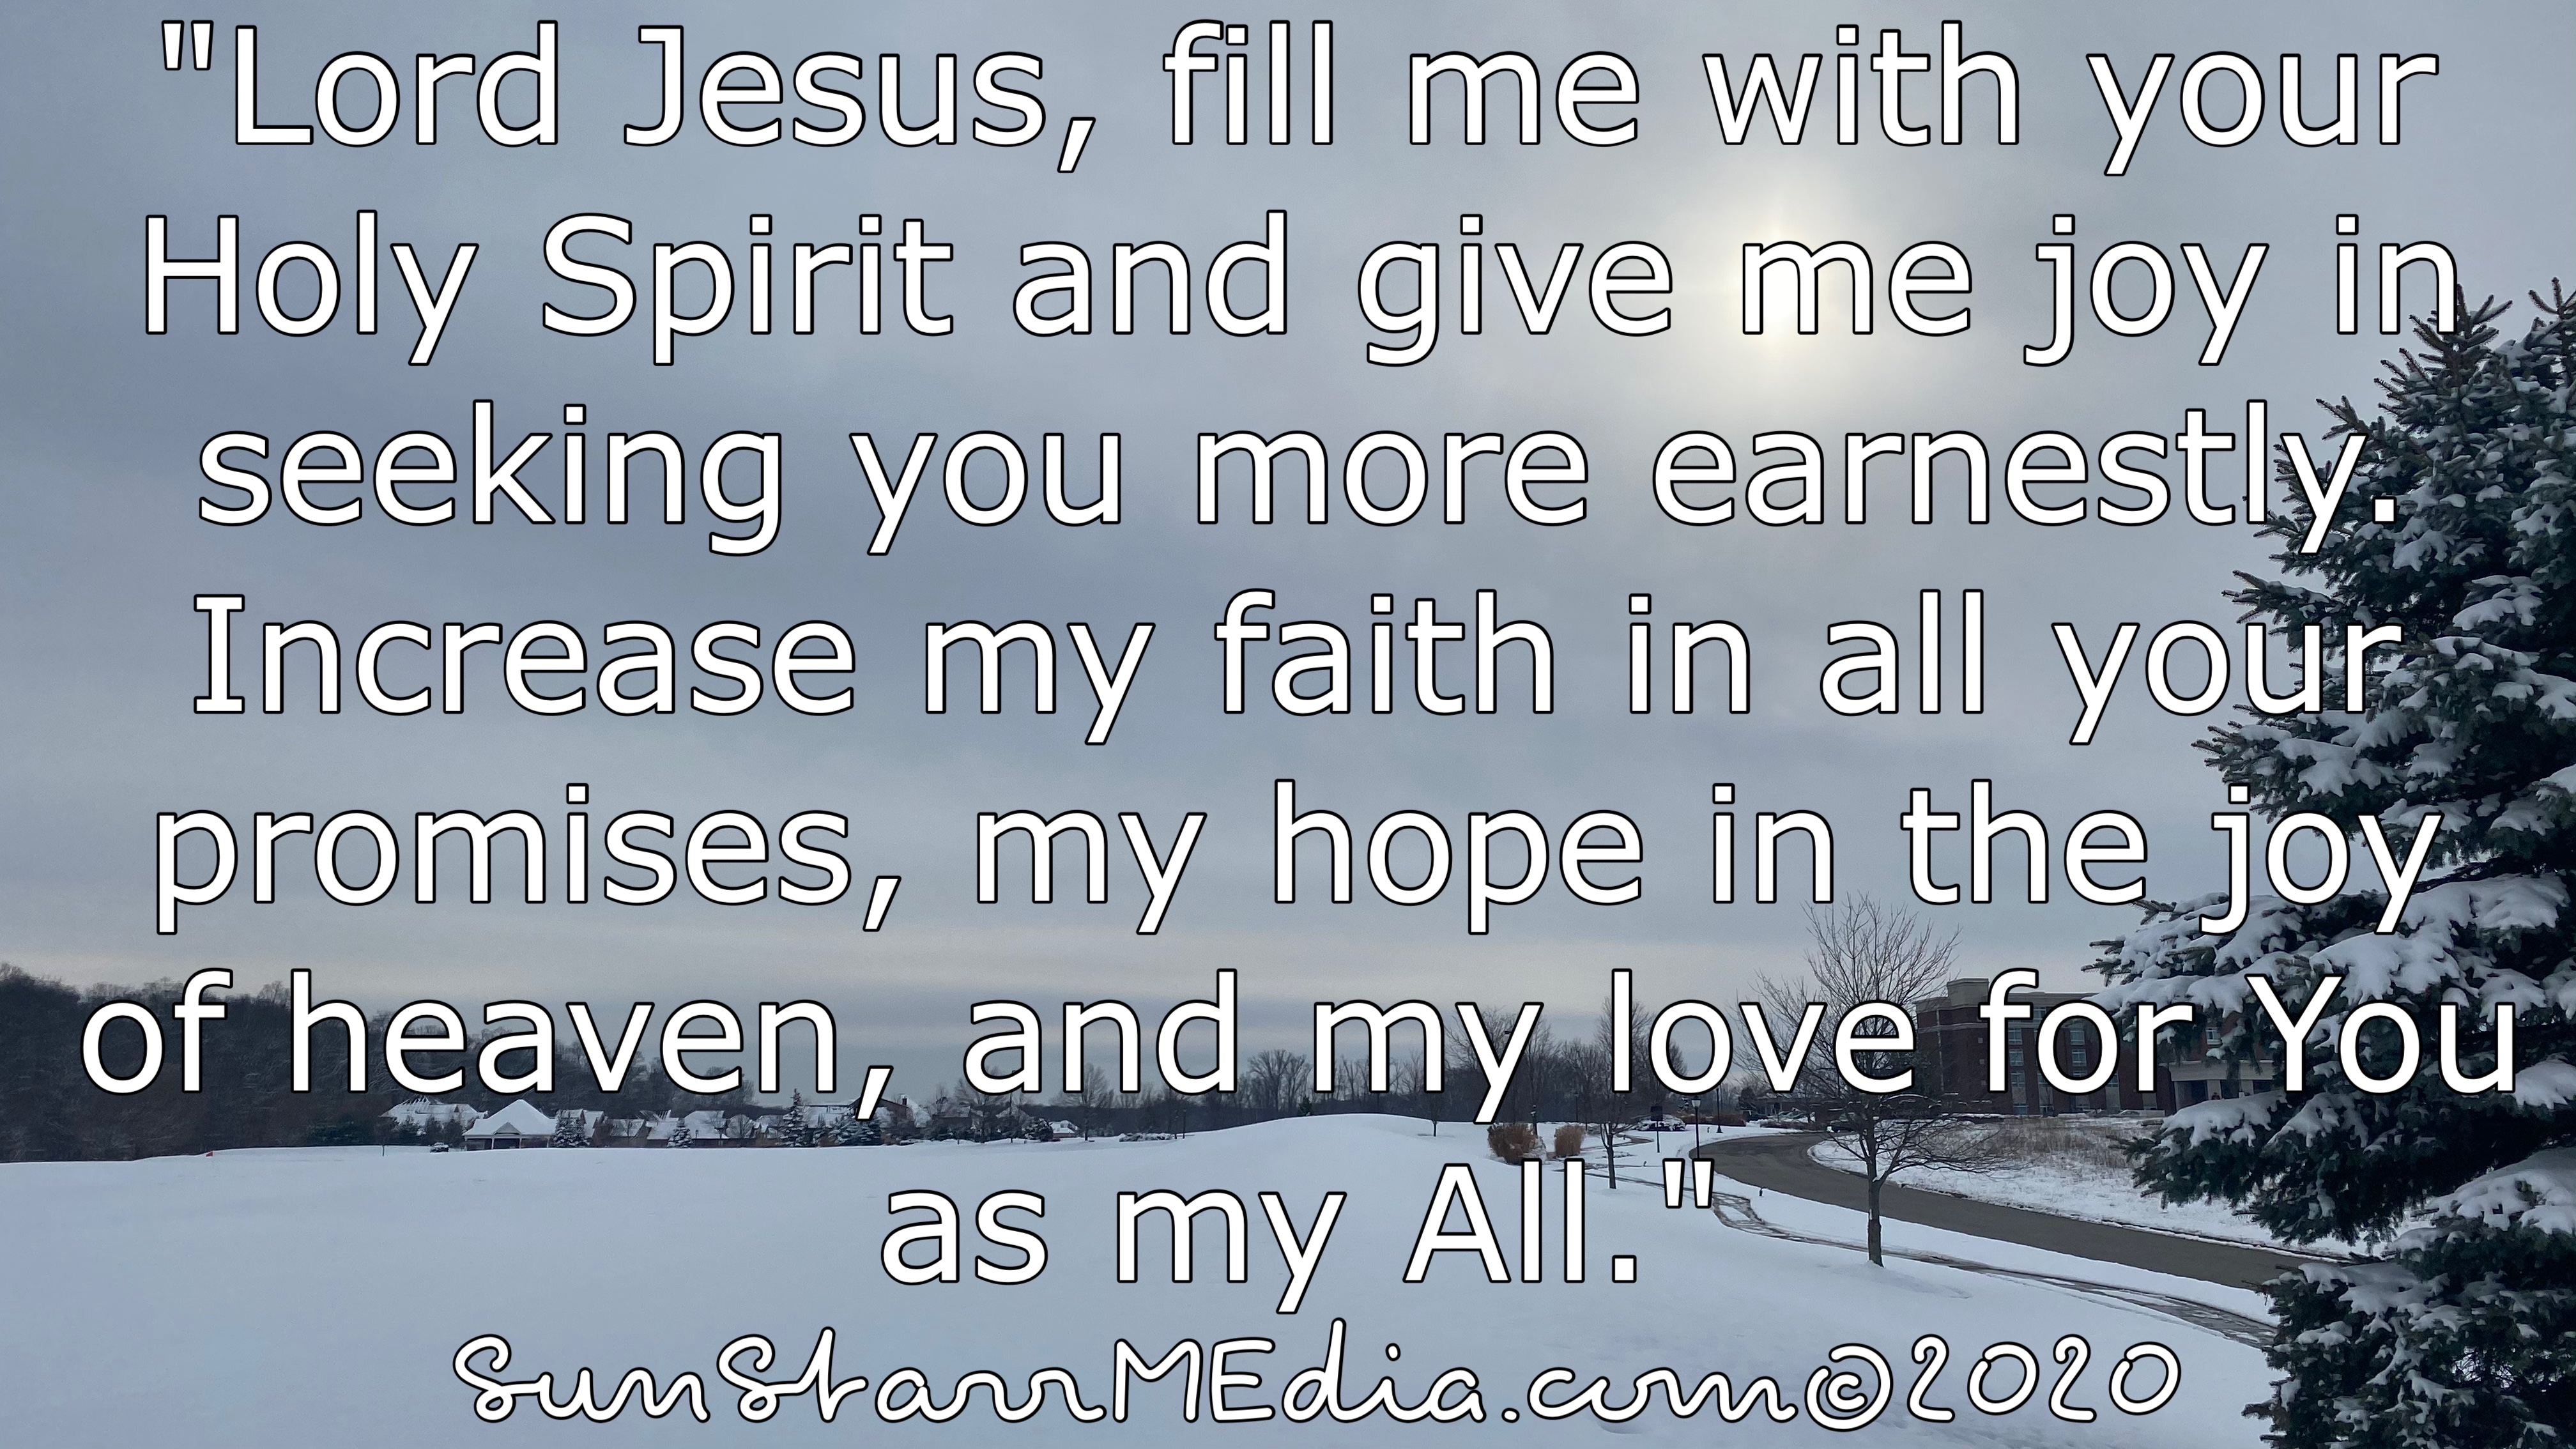 """""""Lord Jesus, fill me with your Holy Spirit and give me joy in seeking you more earnestly. Increase my faith in all your promises, my hope in the joy of heaven, and my love for You as my All."""""""